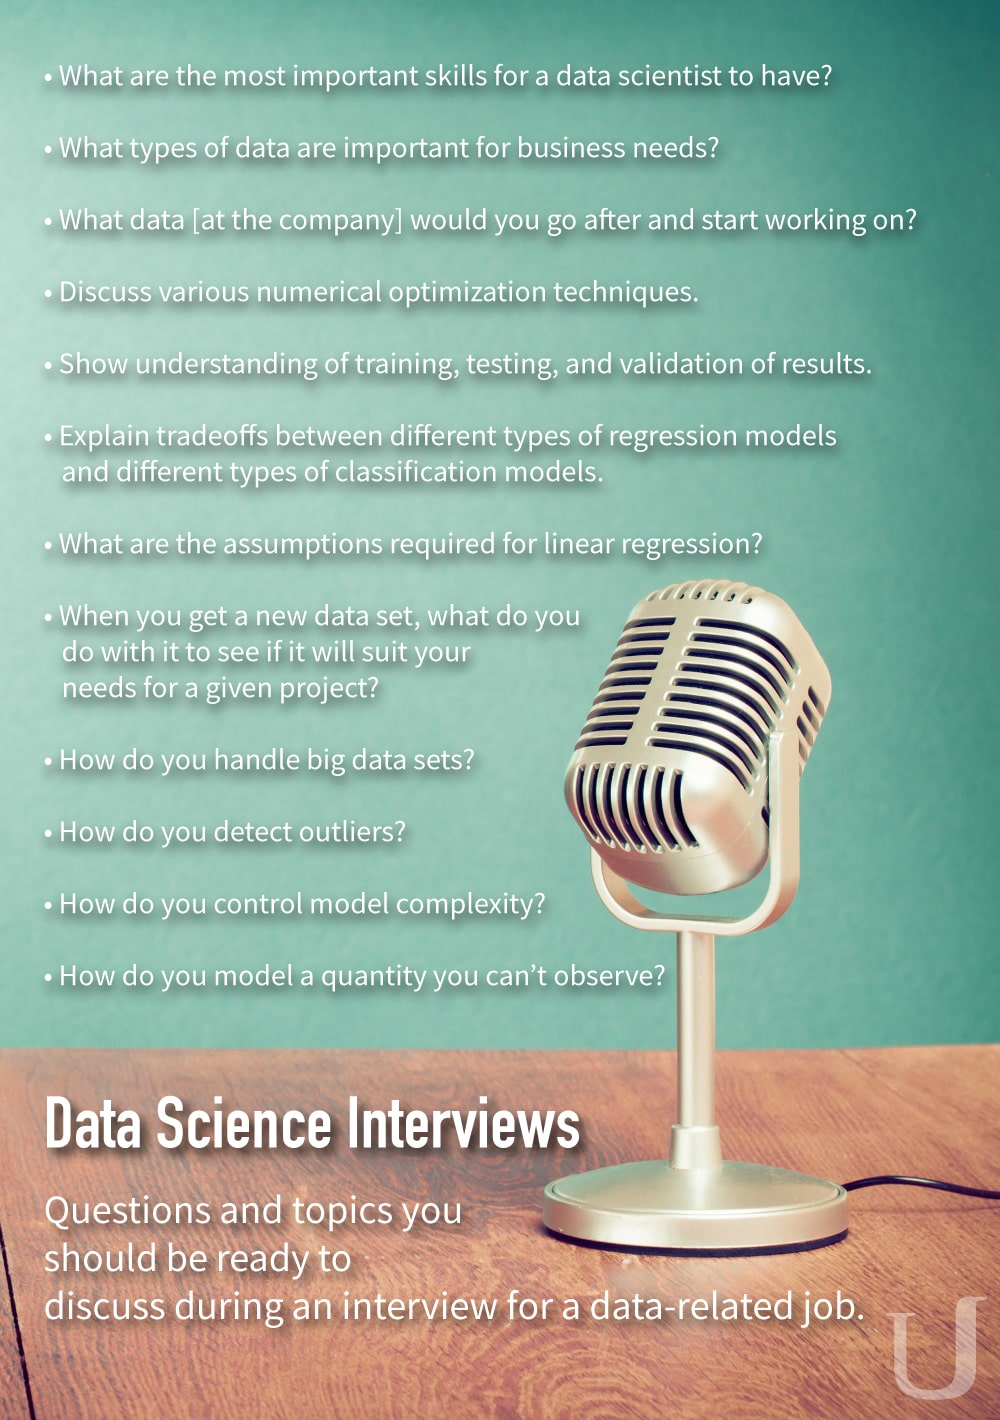 business analyst interview questions to ask what your resume business analyst interview questions to ask top 10 business analyst job interview questions udacity data science